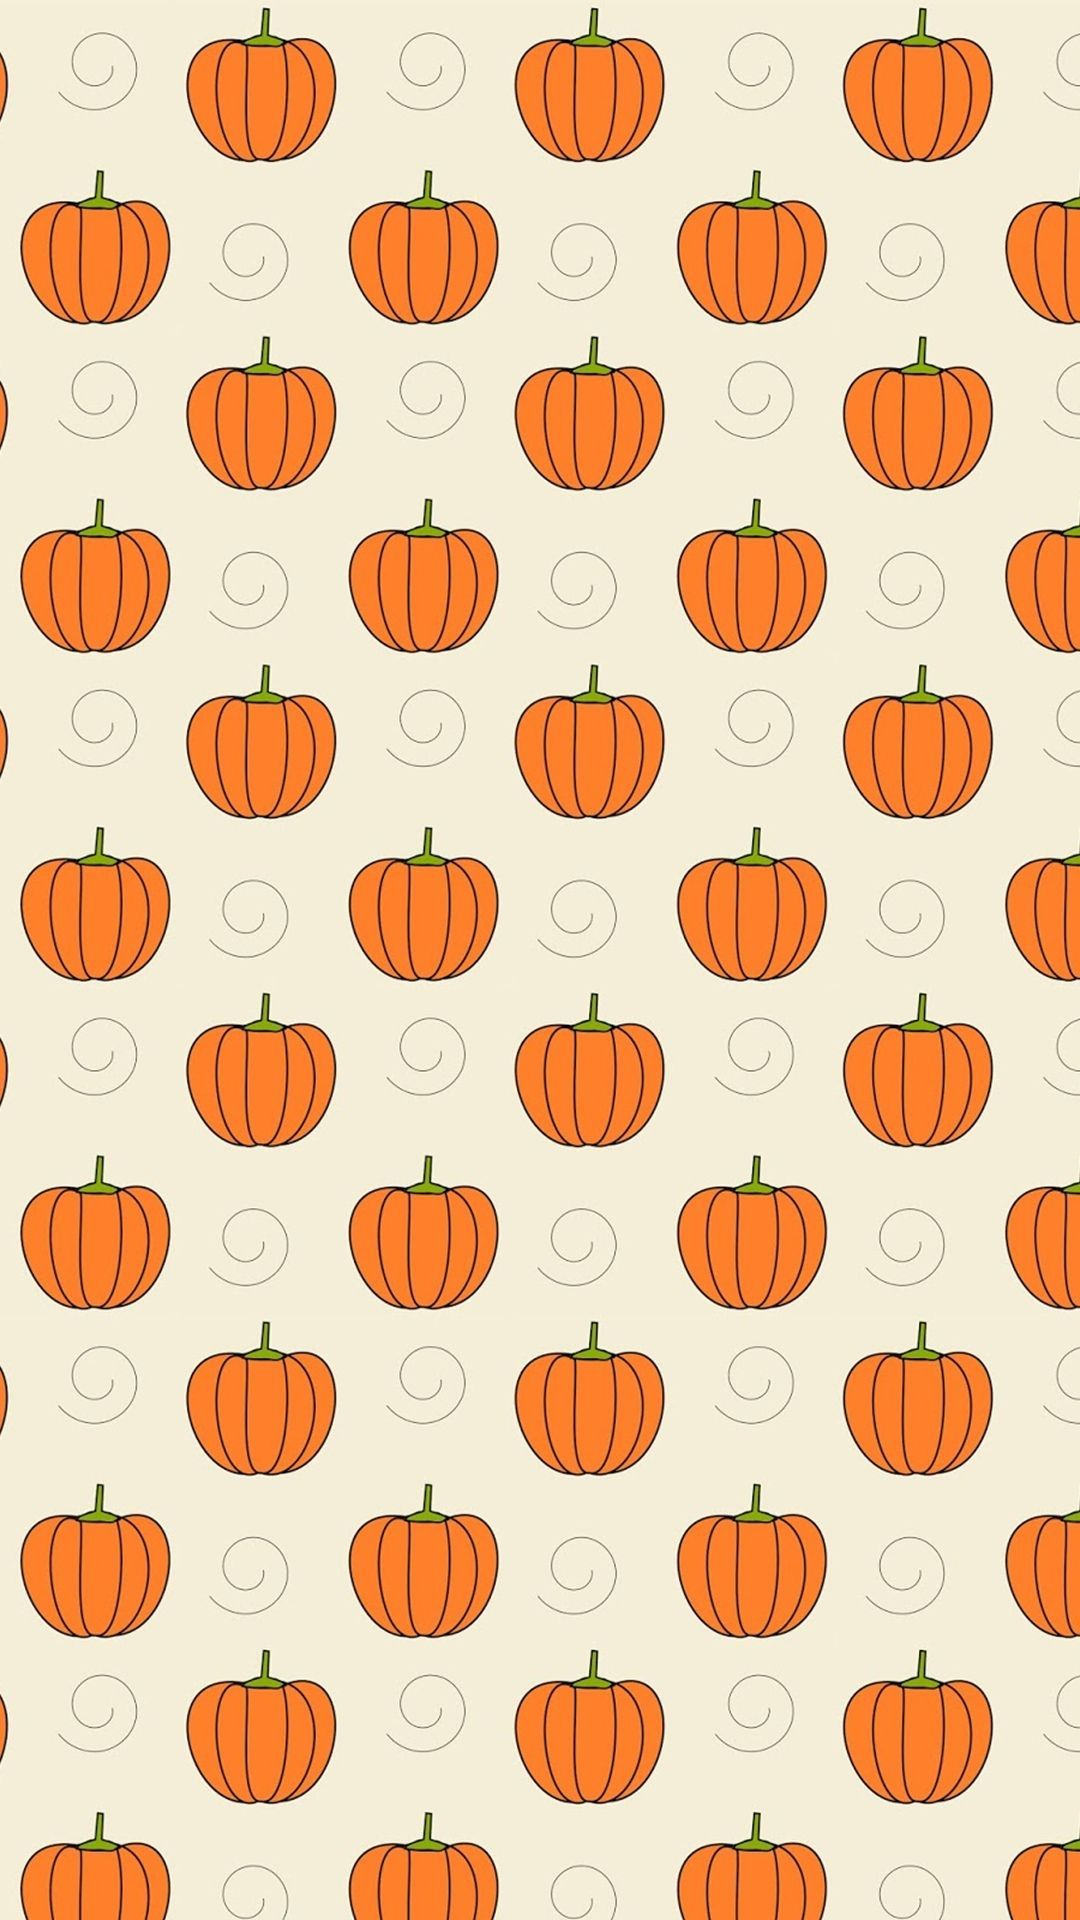 Pumpkins Tap To See More Cute Halloween Wallpaper Mobile9 Awesome Pretty Wallpapers In 2020 Cute Fall Wallpaper Pumpkin Wallpaper Halloween Wallpaper Cute